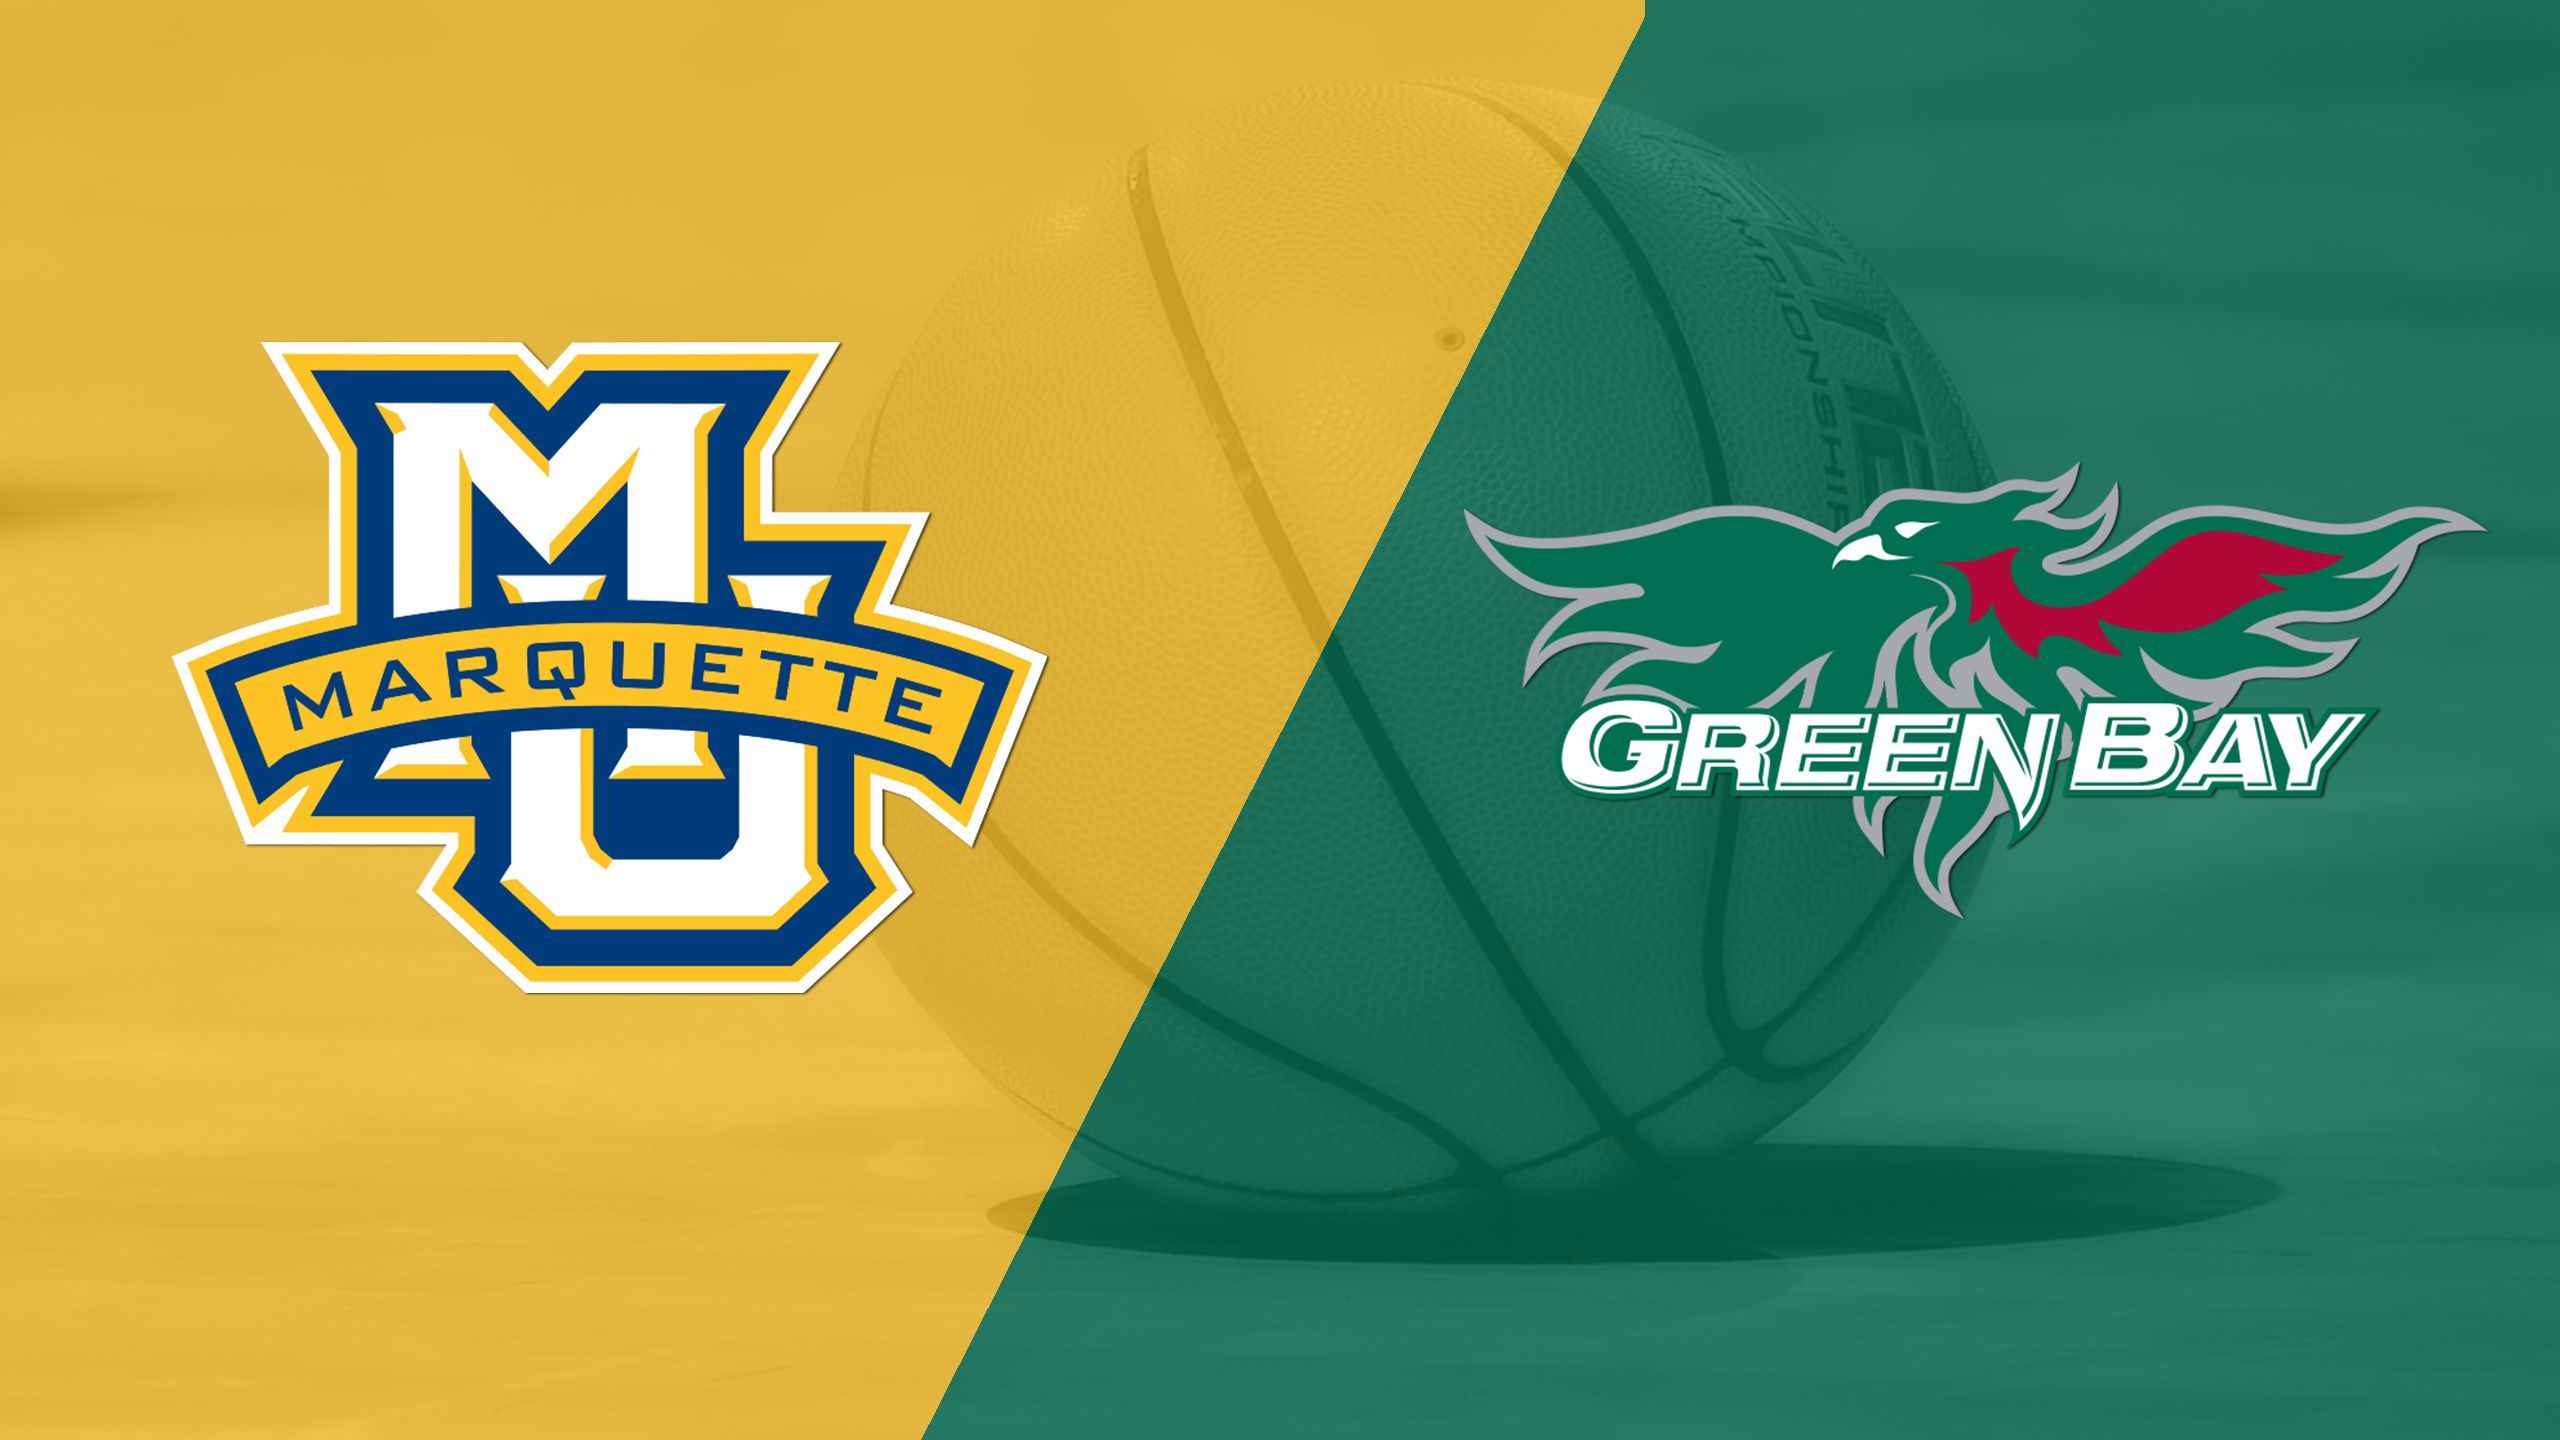 #23 Marquette vs. Green Bay (W Basketball)